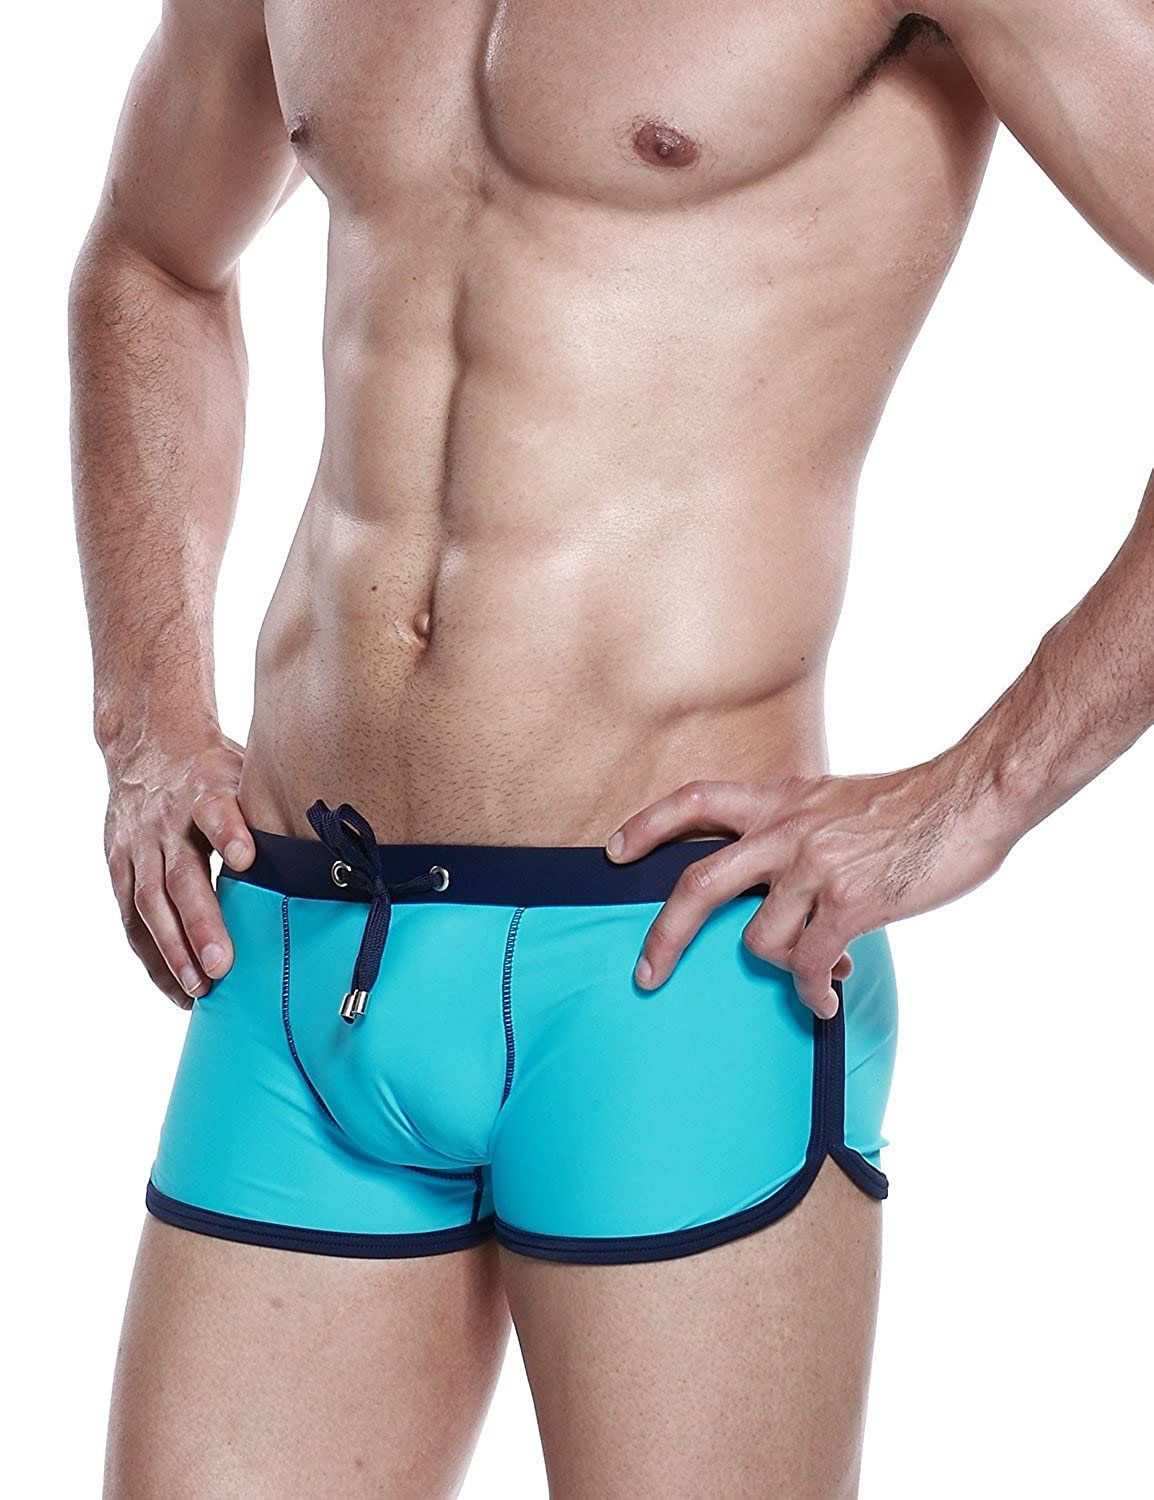 SEOBEAN Mens Low Rise Sexy Swimwear Trunk Boxer Brief Swimsuit 9 Colors